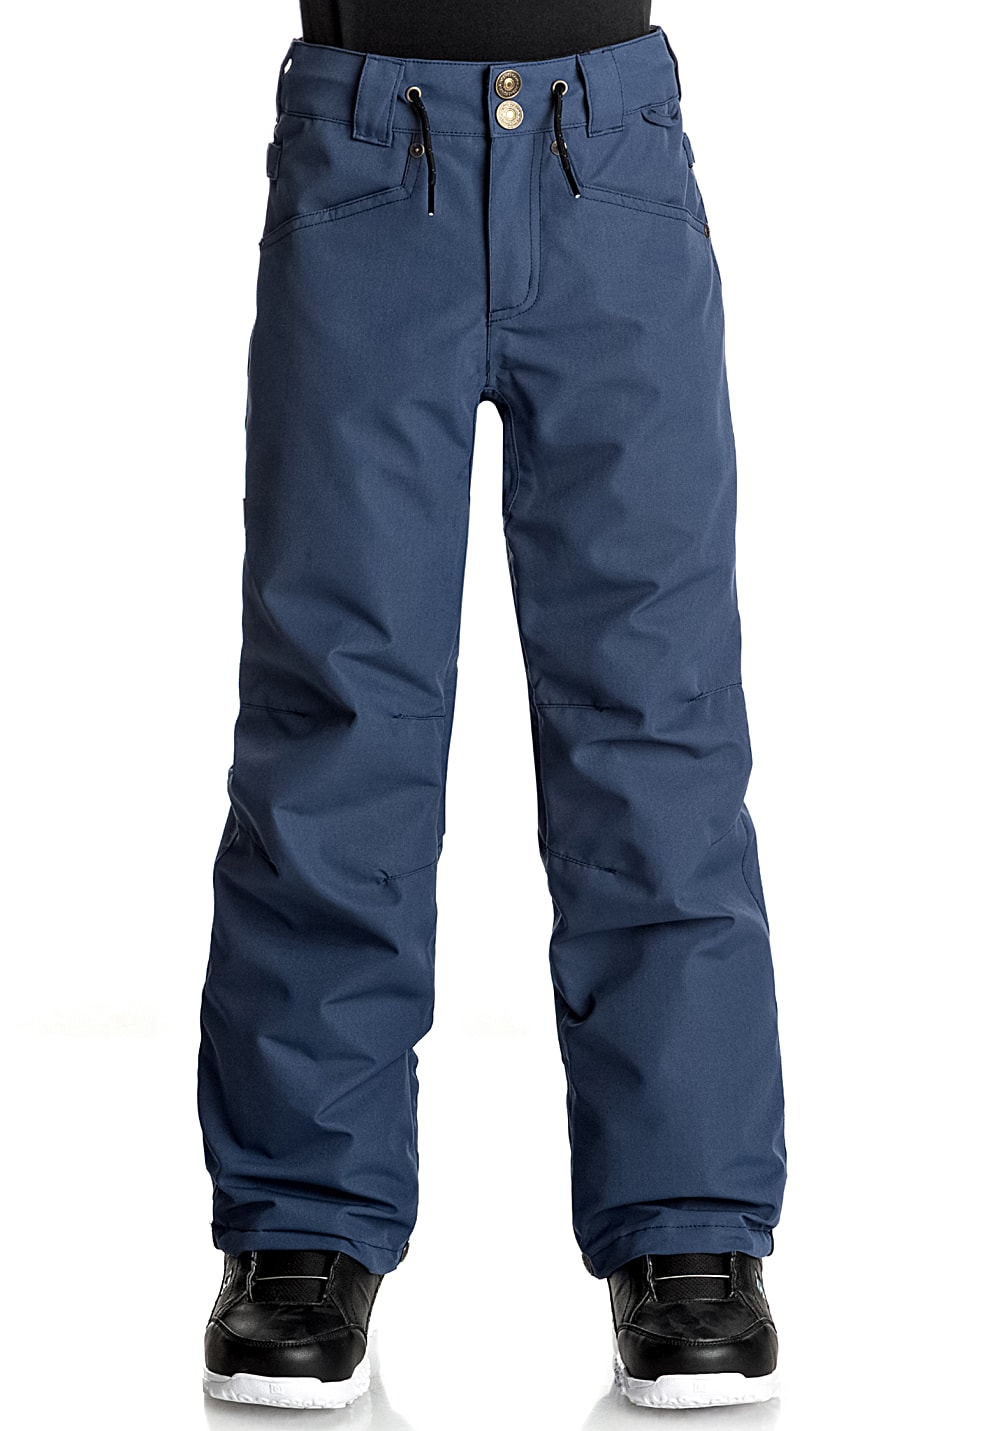 Boysregenwinter - DC Relay Snowboardhose für Jungs Blau - Onlineshop Planet Sports